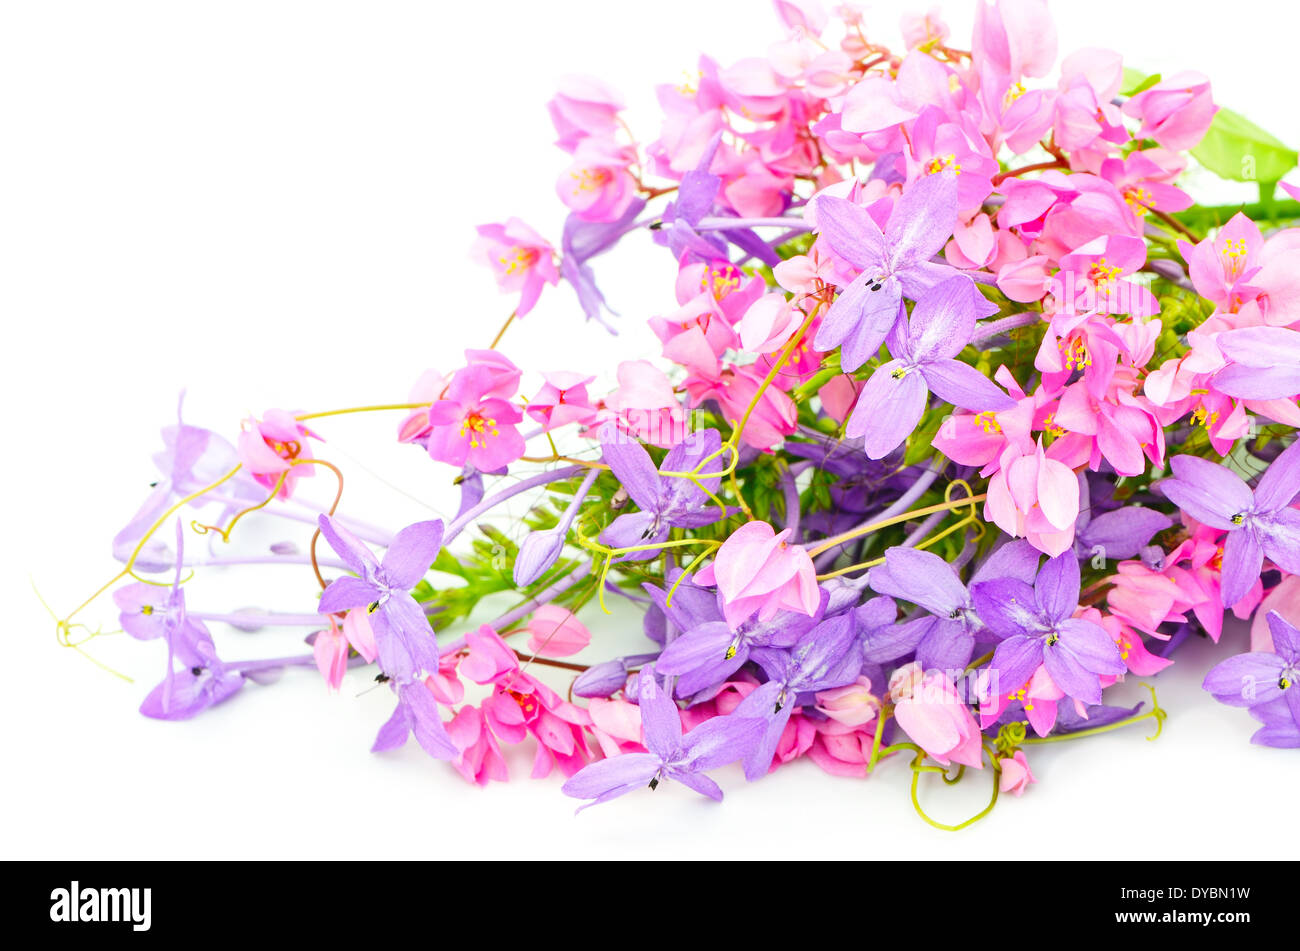 Summer Flowers Background Pink And Purple Flower Isolated On A